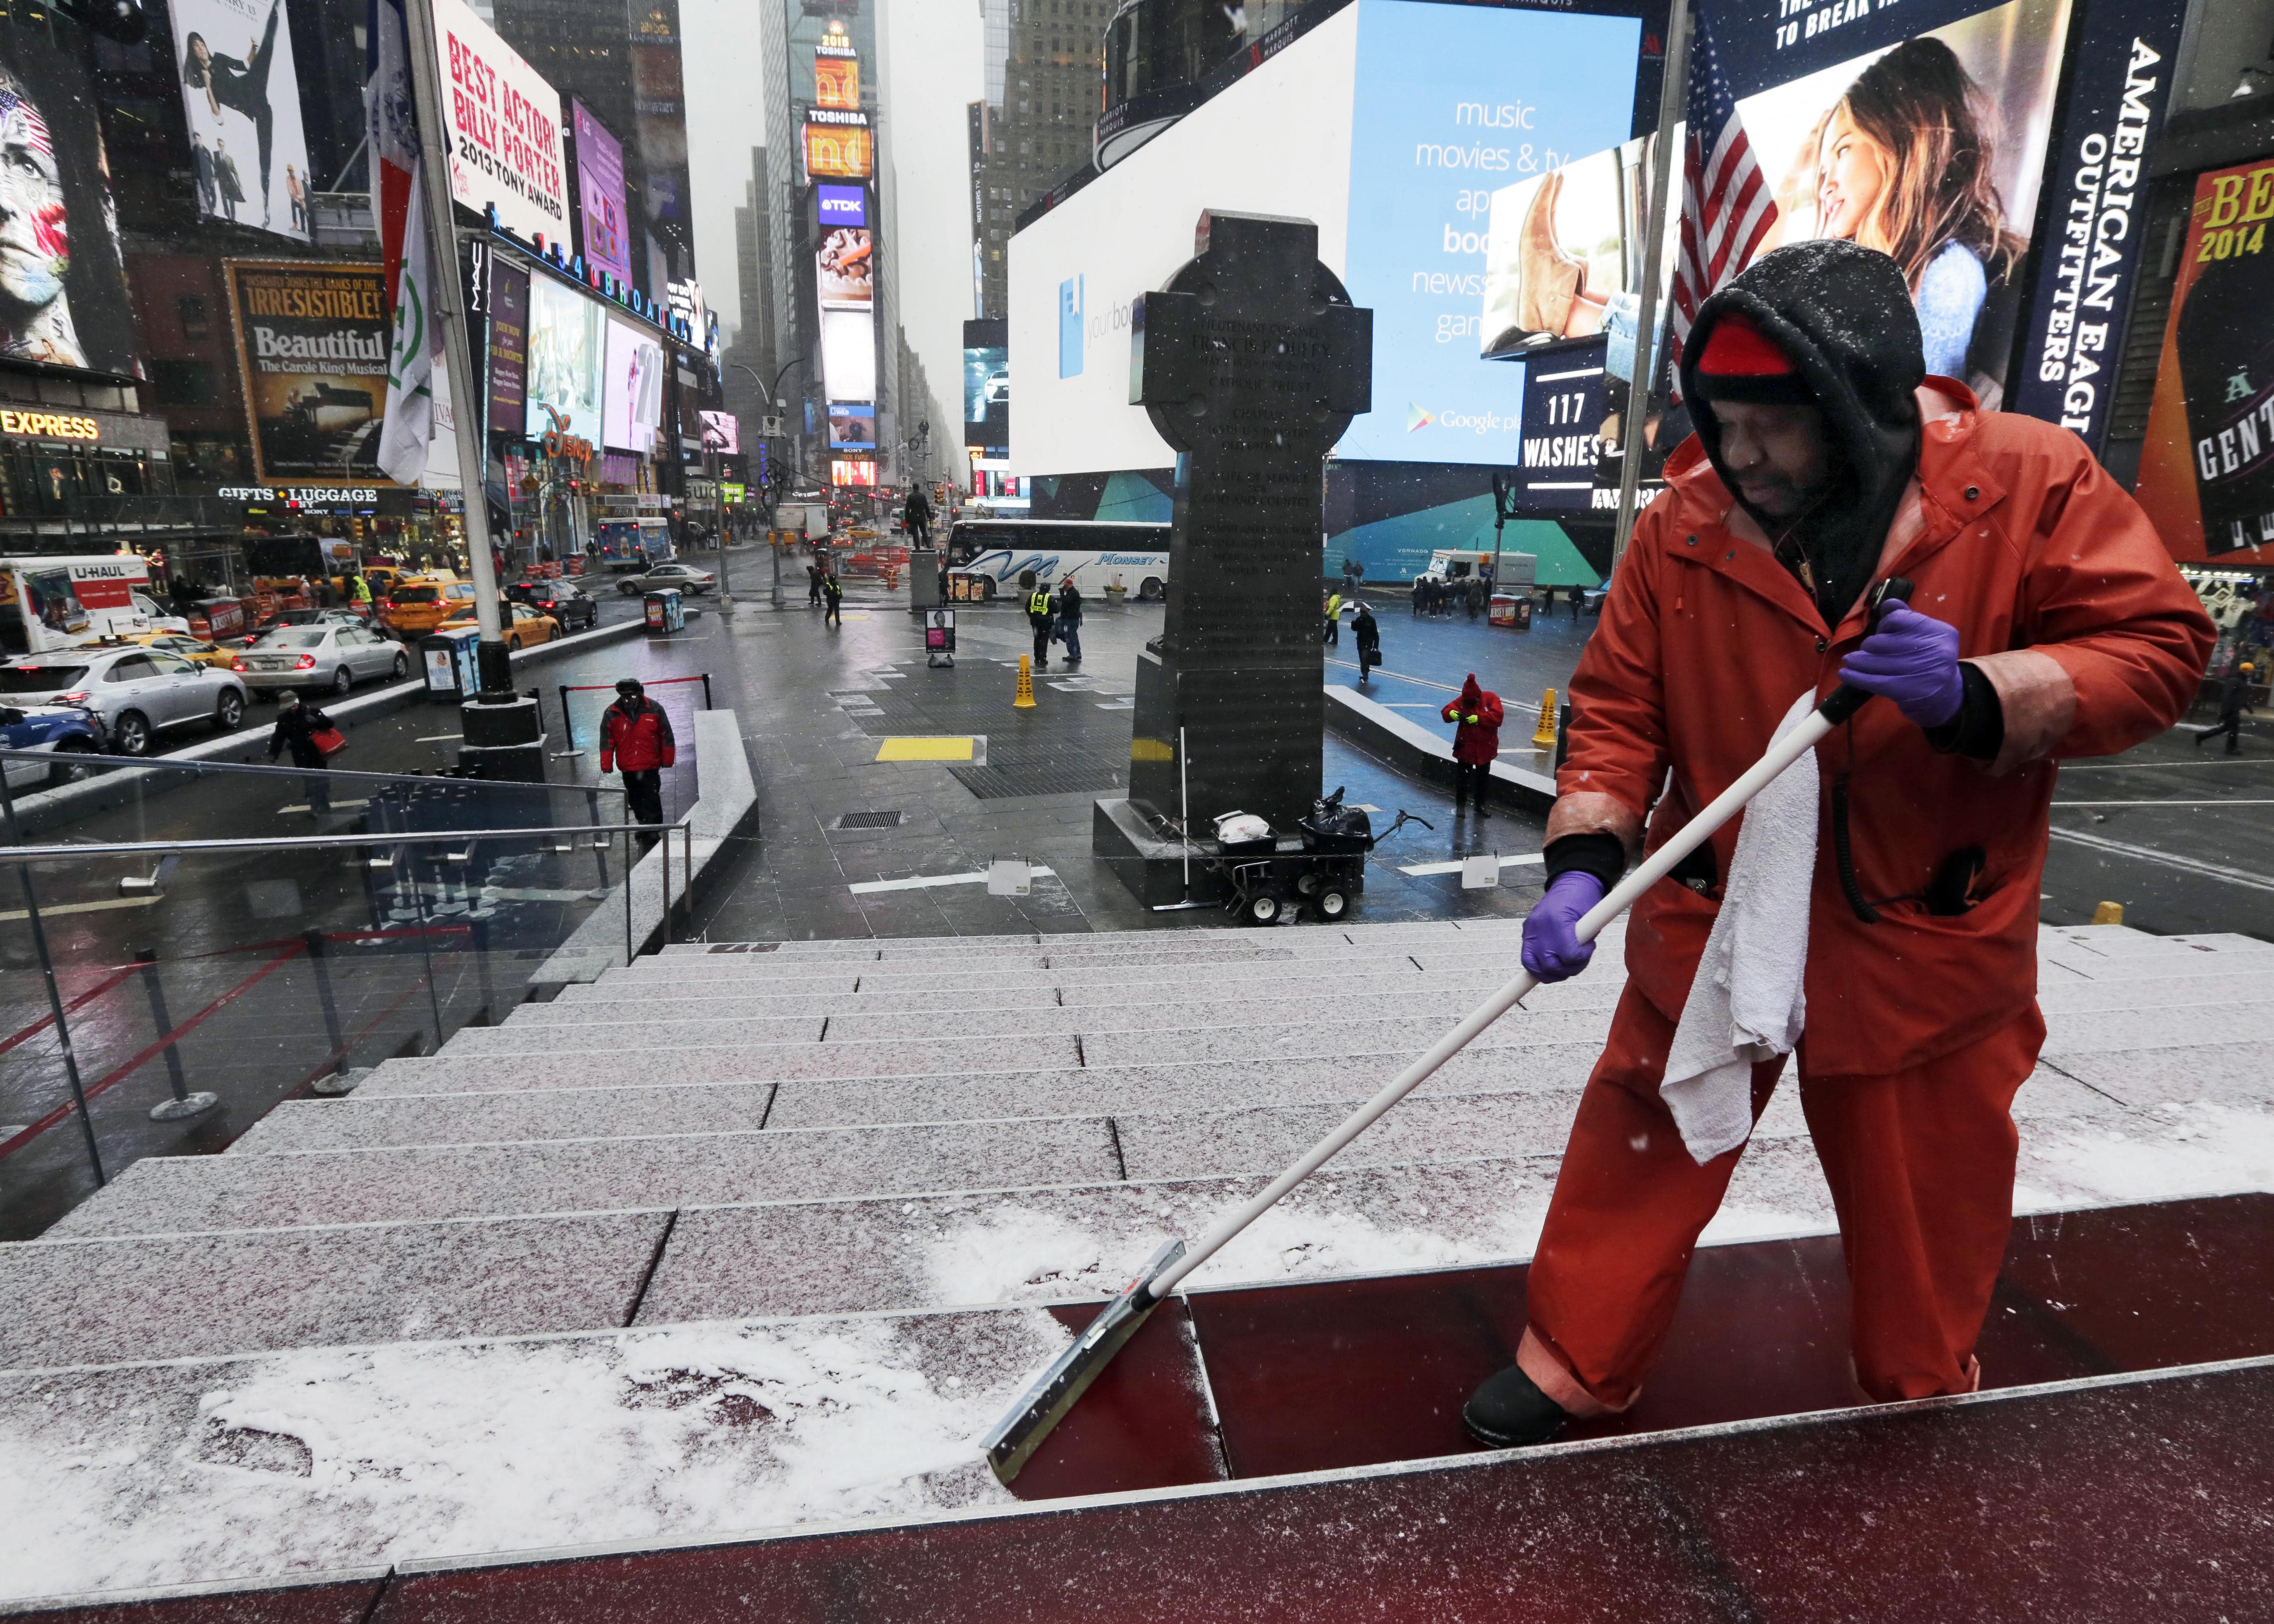 Broadway theaters shutter as snowstorm blasts New York City